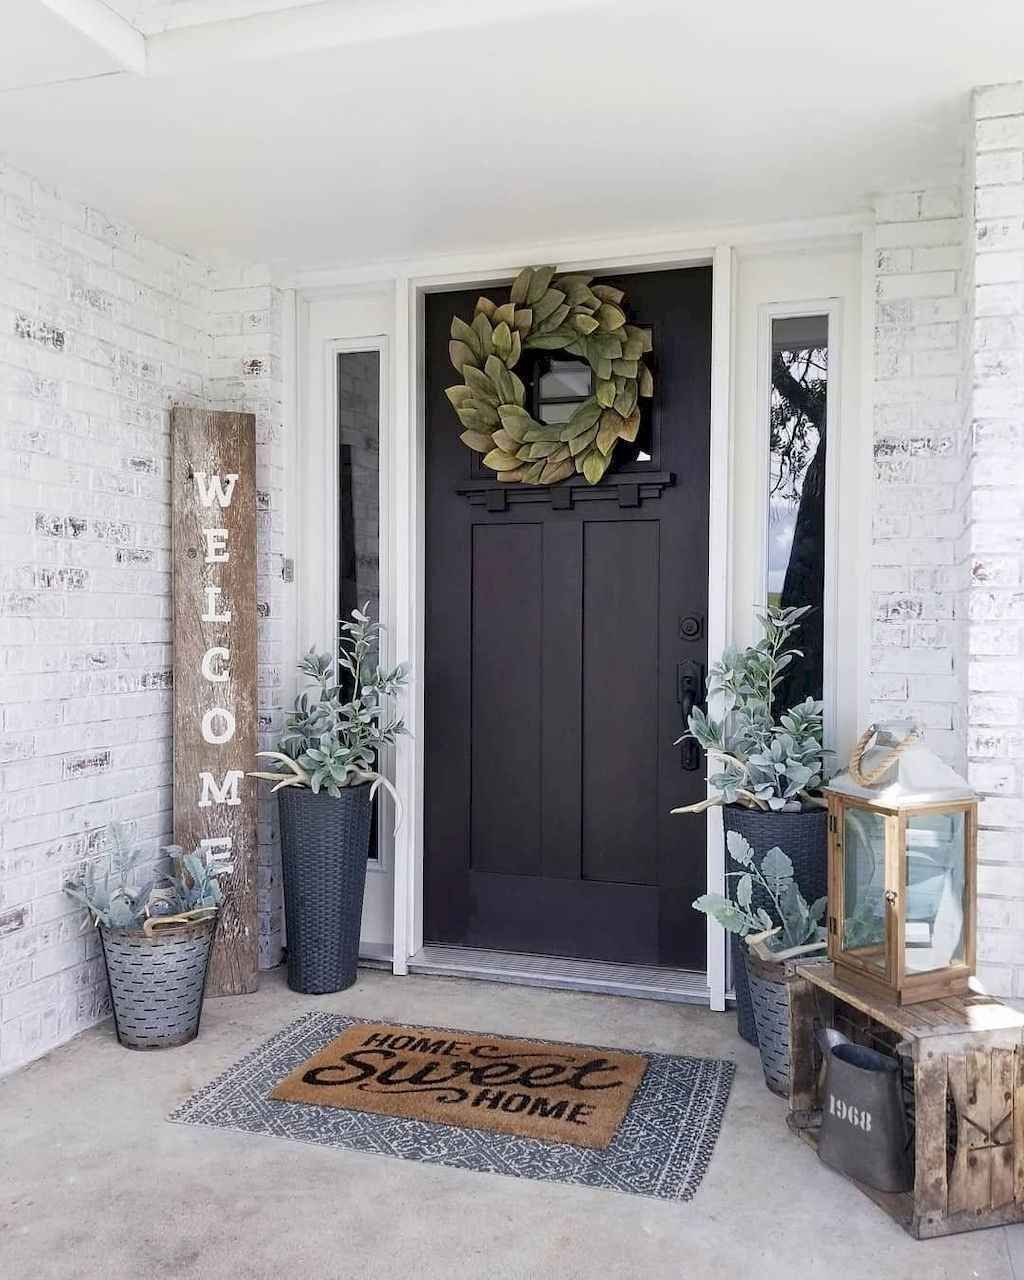 53 Beautiful Spring Decorating Ideas For Front Porch In